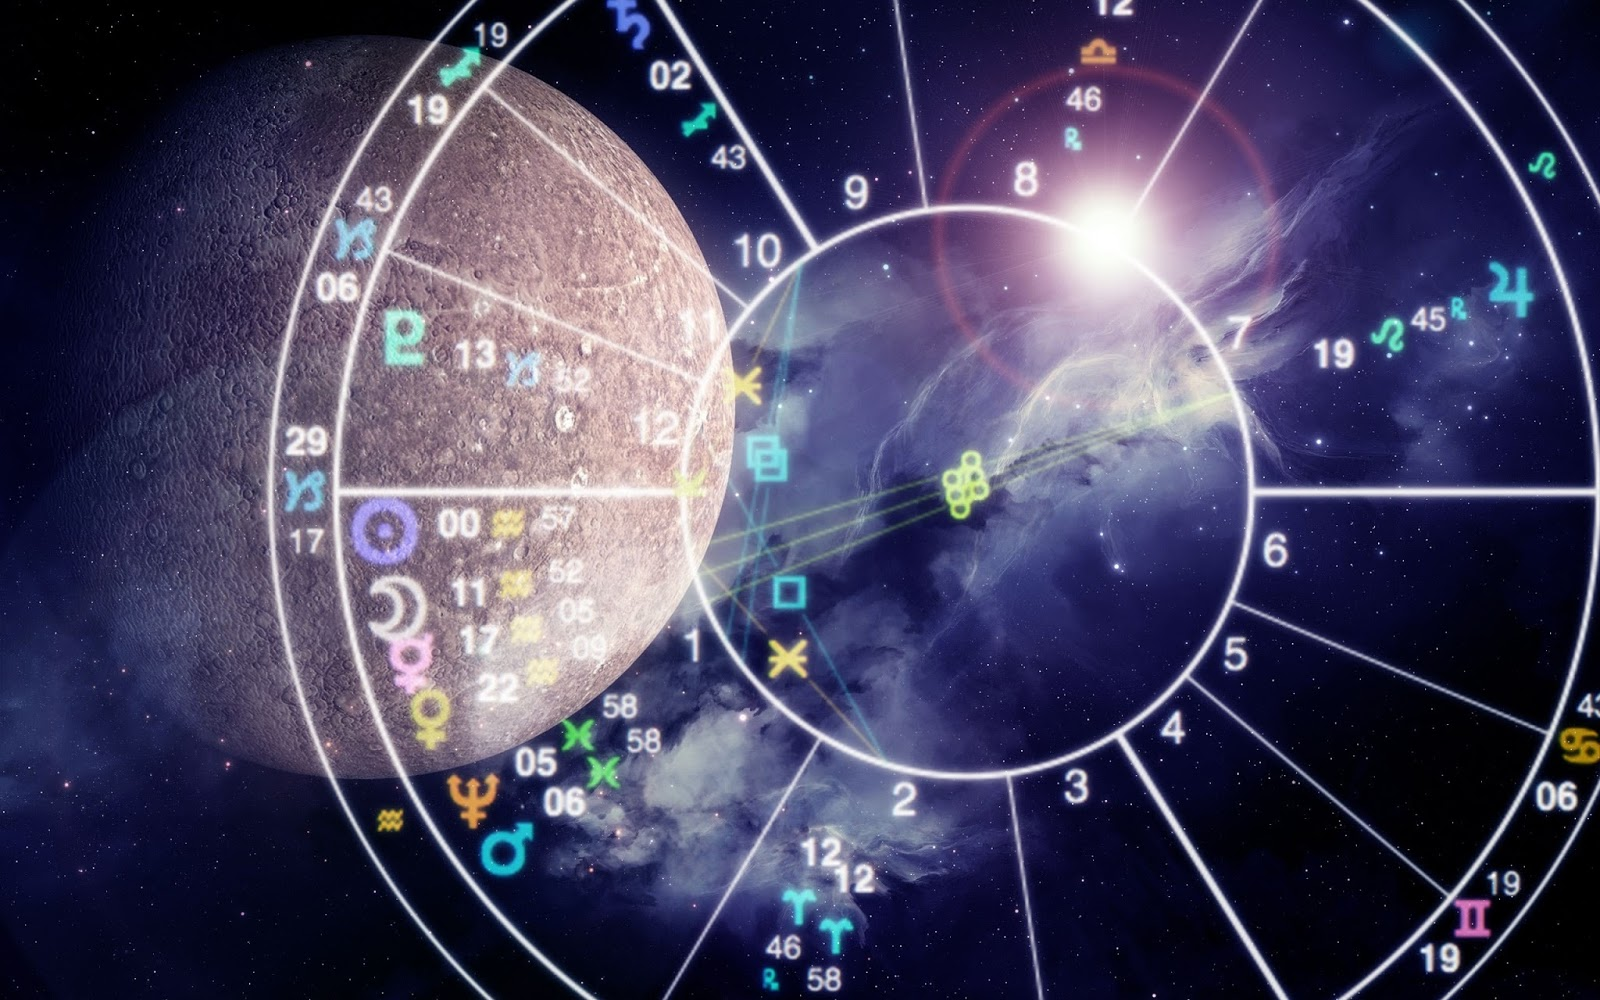 Daily Horoscope April 5th 2018 Daily Weekly Monthly Horoscope